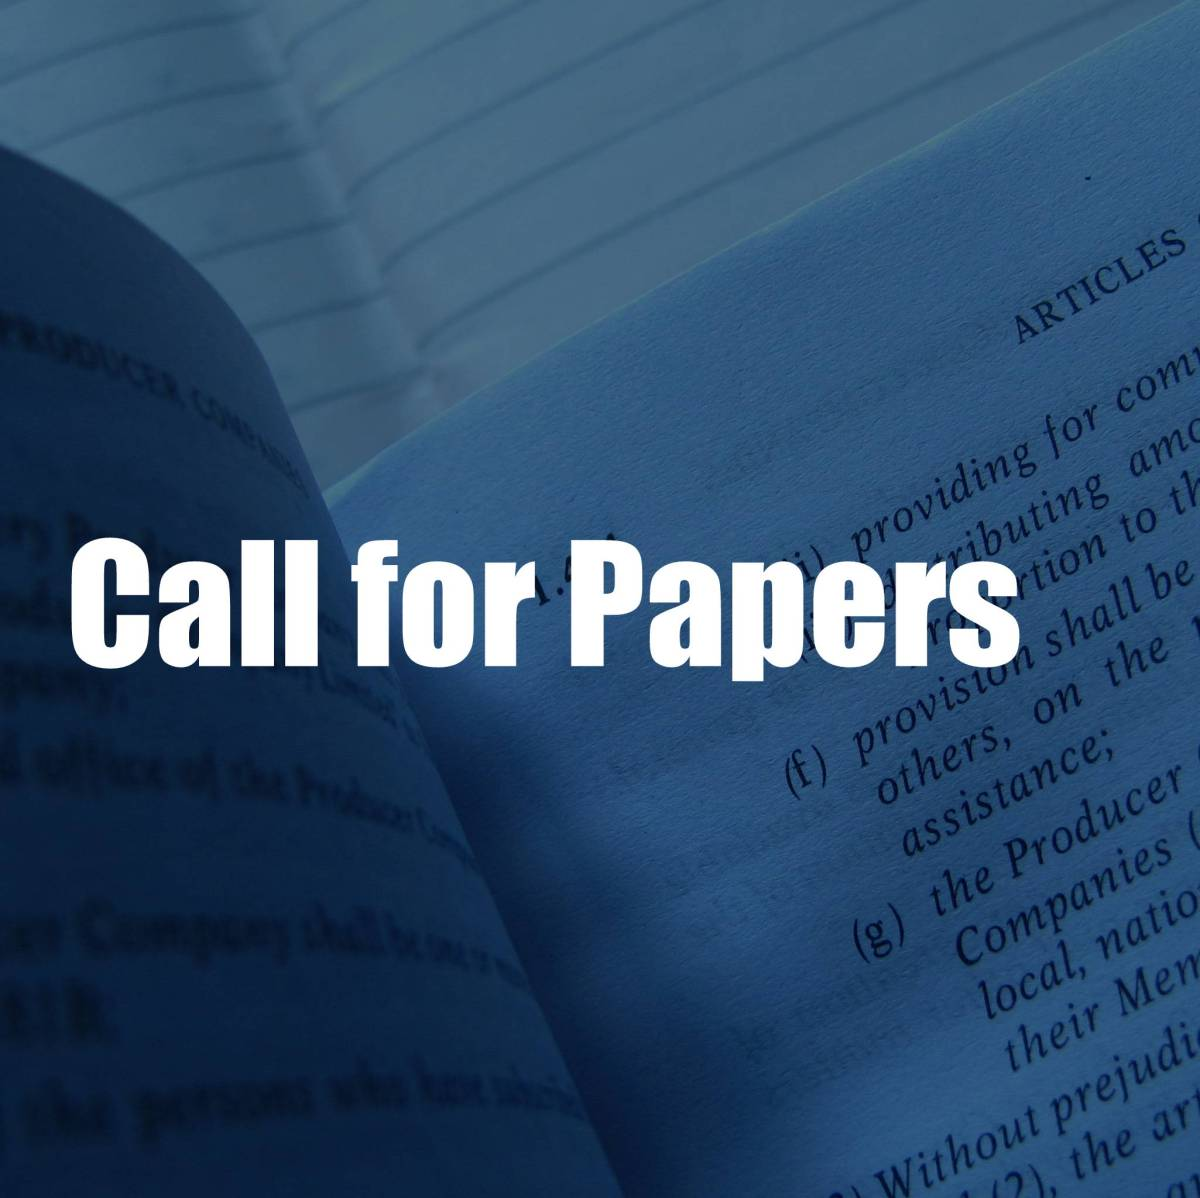 Cause And Effect Essay Papers Call For Paper  The Department Of Law University Of North Bengal   Knowledge Steez High School Graduation Essay also Model English Essays Call For Paper  The Department Of Law University Of North Bengal  Importance Of English Essay